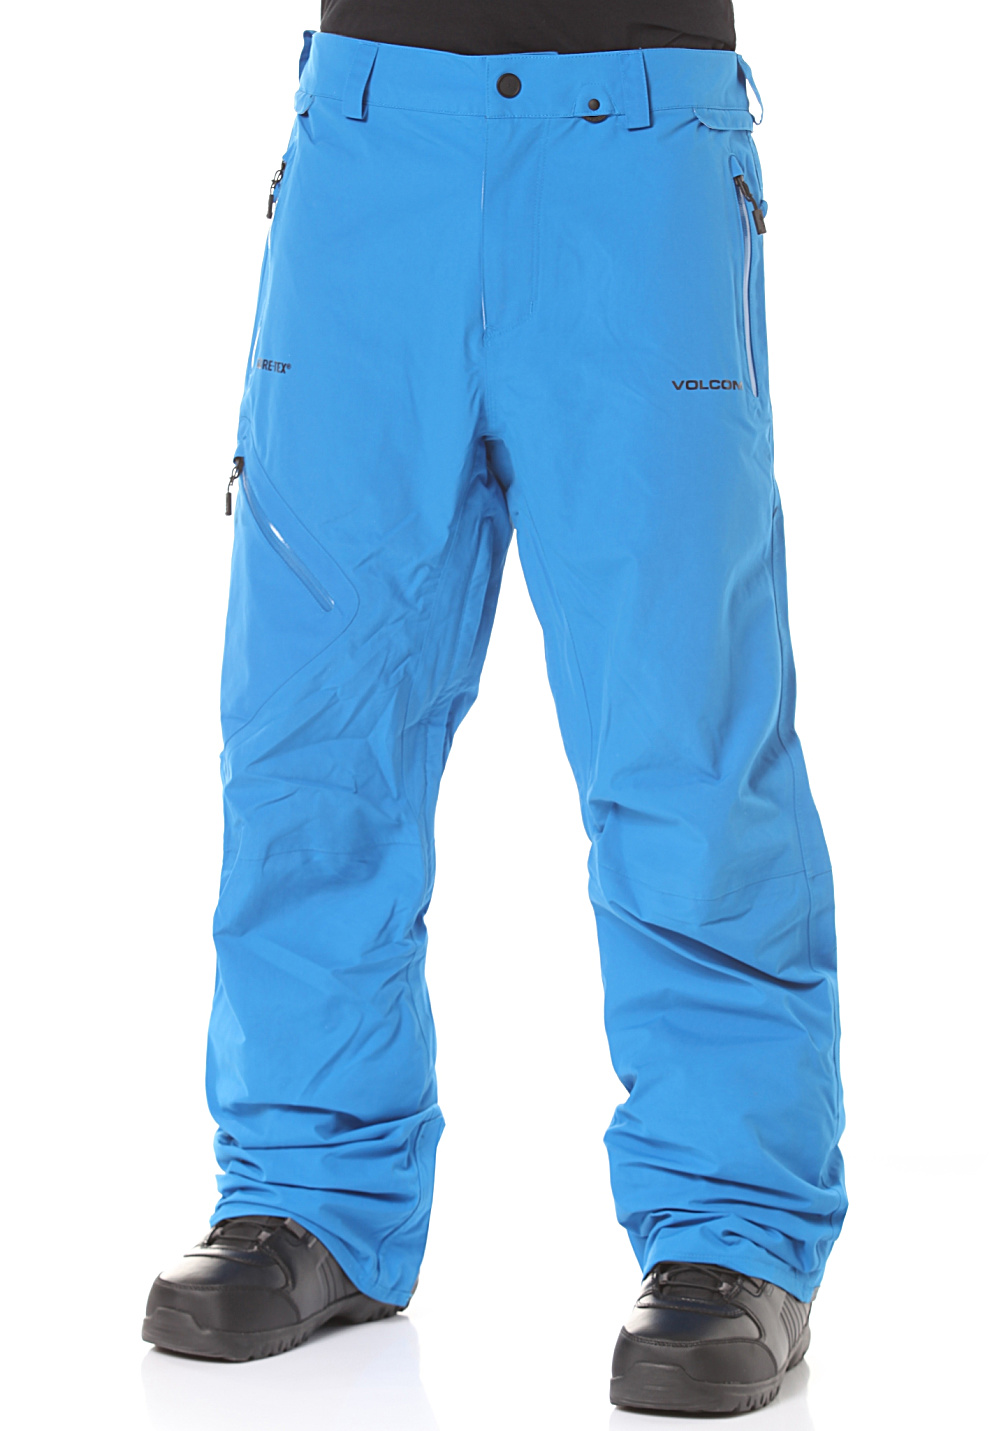 volcom l gore tex pantalon de snowboard pour homme bleu planet sports. Black Bedroom Furniture Sets. Home Design Ideas